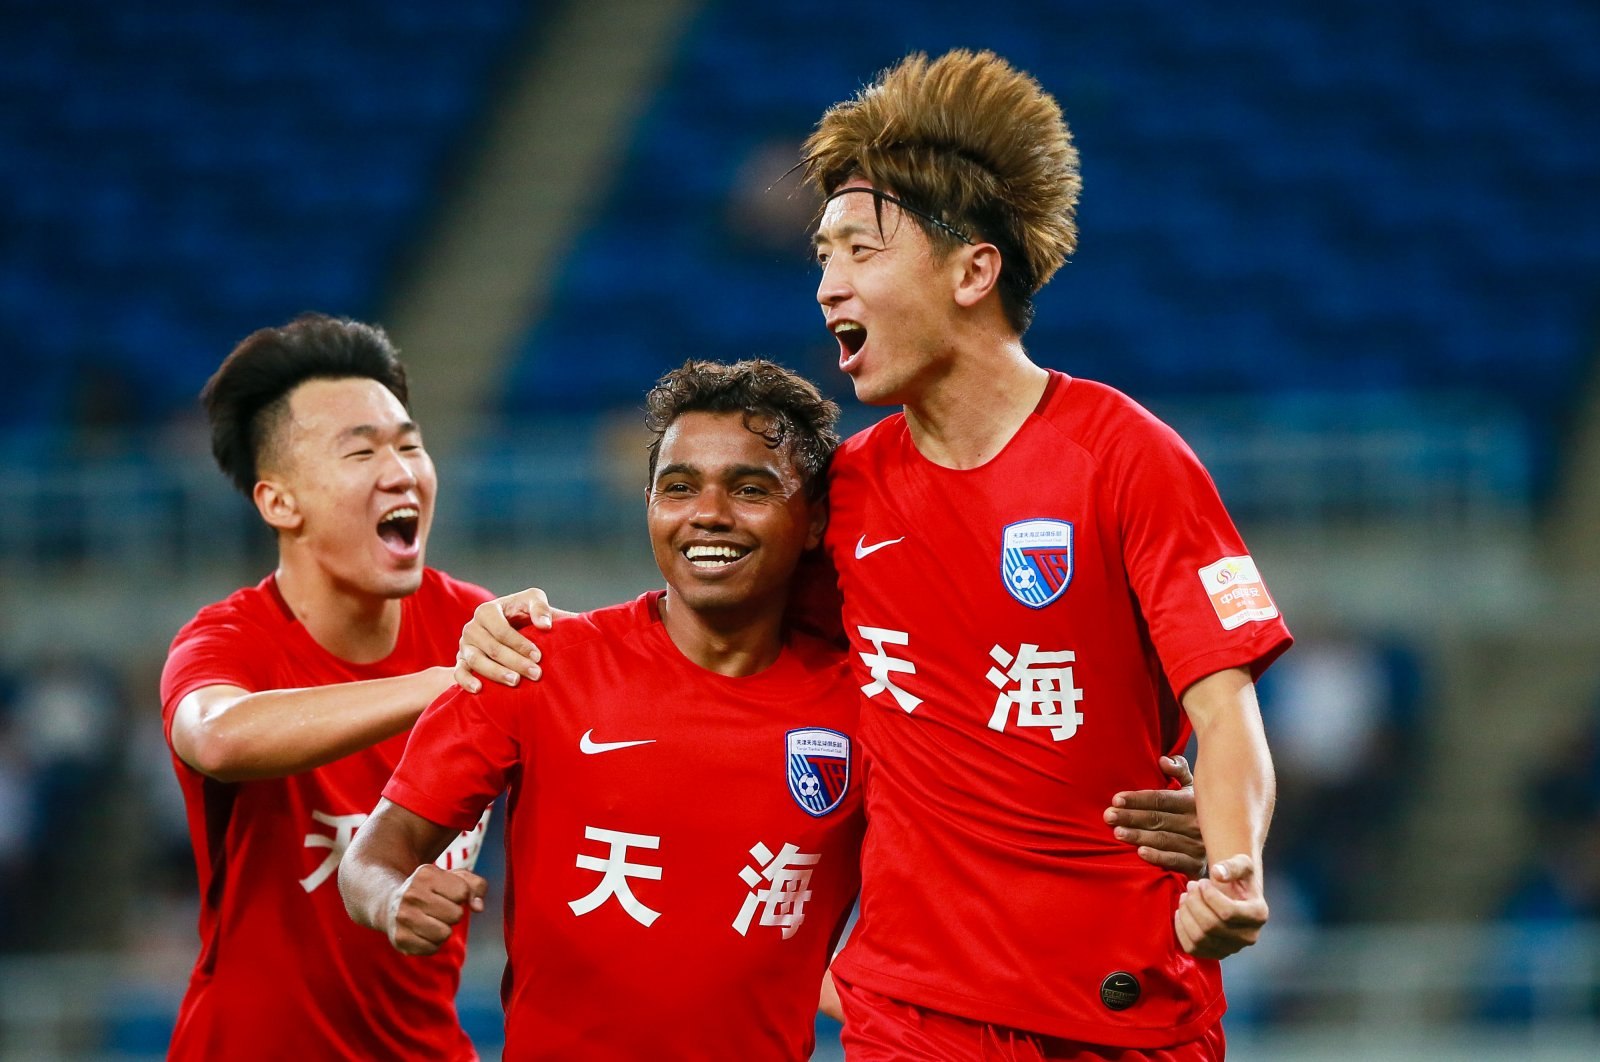 Tianjin Tianhai F.C players celebrate a goal at the 22nd round match of the 2019 Chinese Football Association Super League (CSL) in Tianjin, China, Aug. 15, 2019. (Reuters Photo)